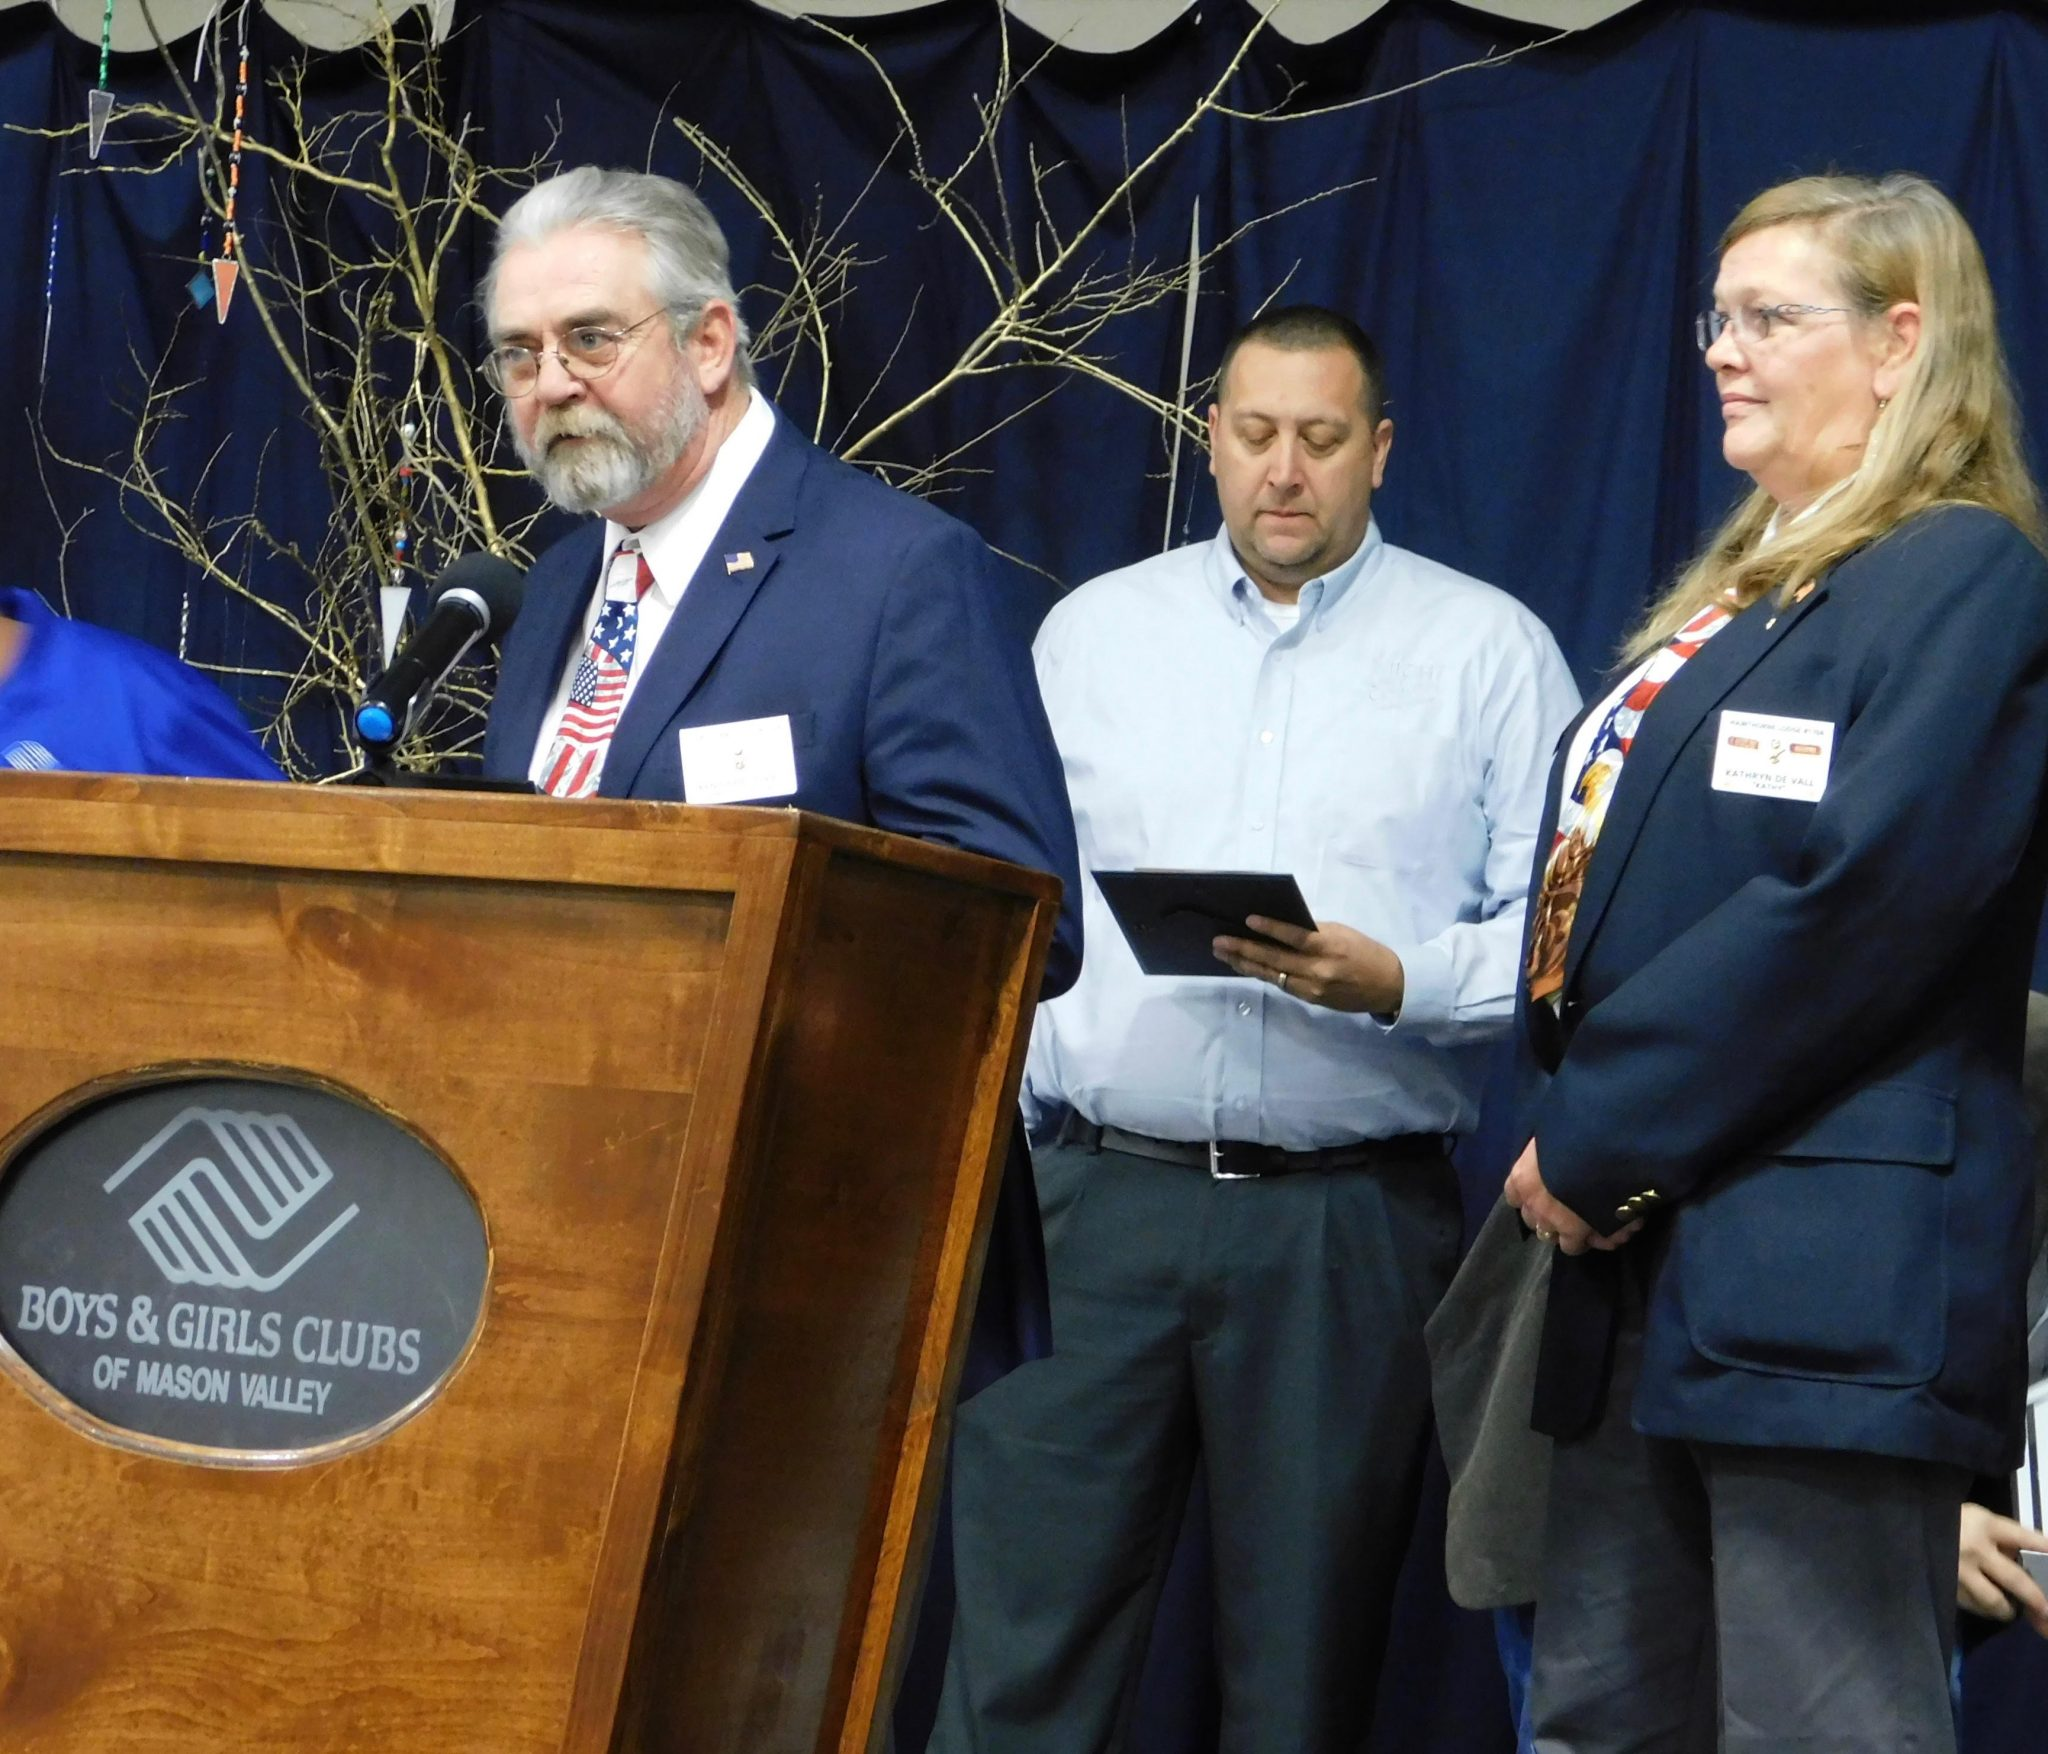 Locals Honored at Annual Boys & Girls Club Banquet